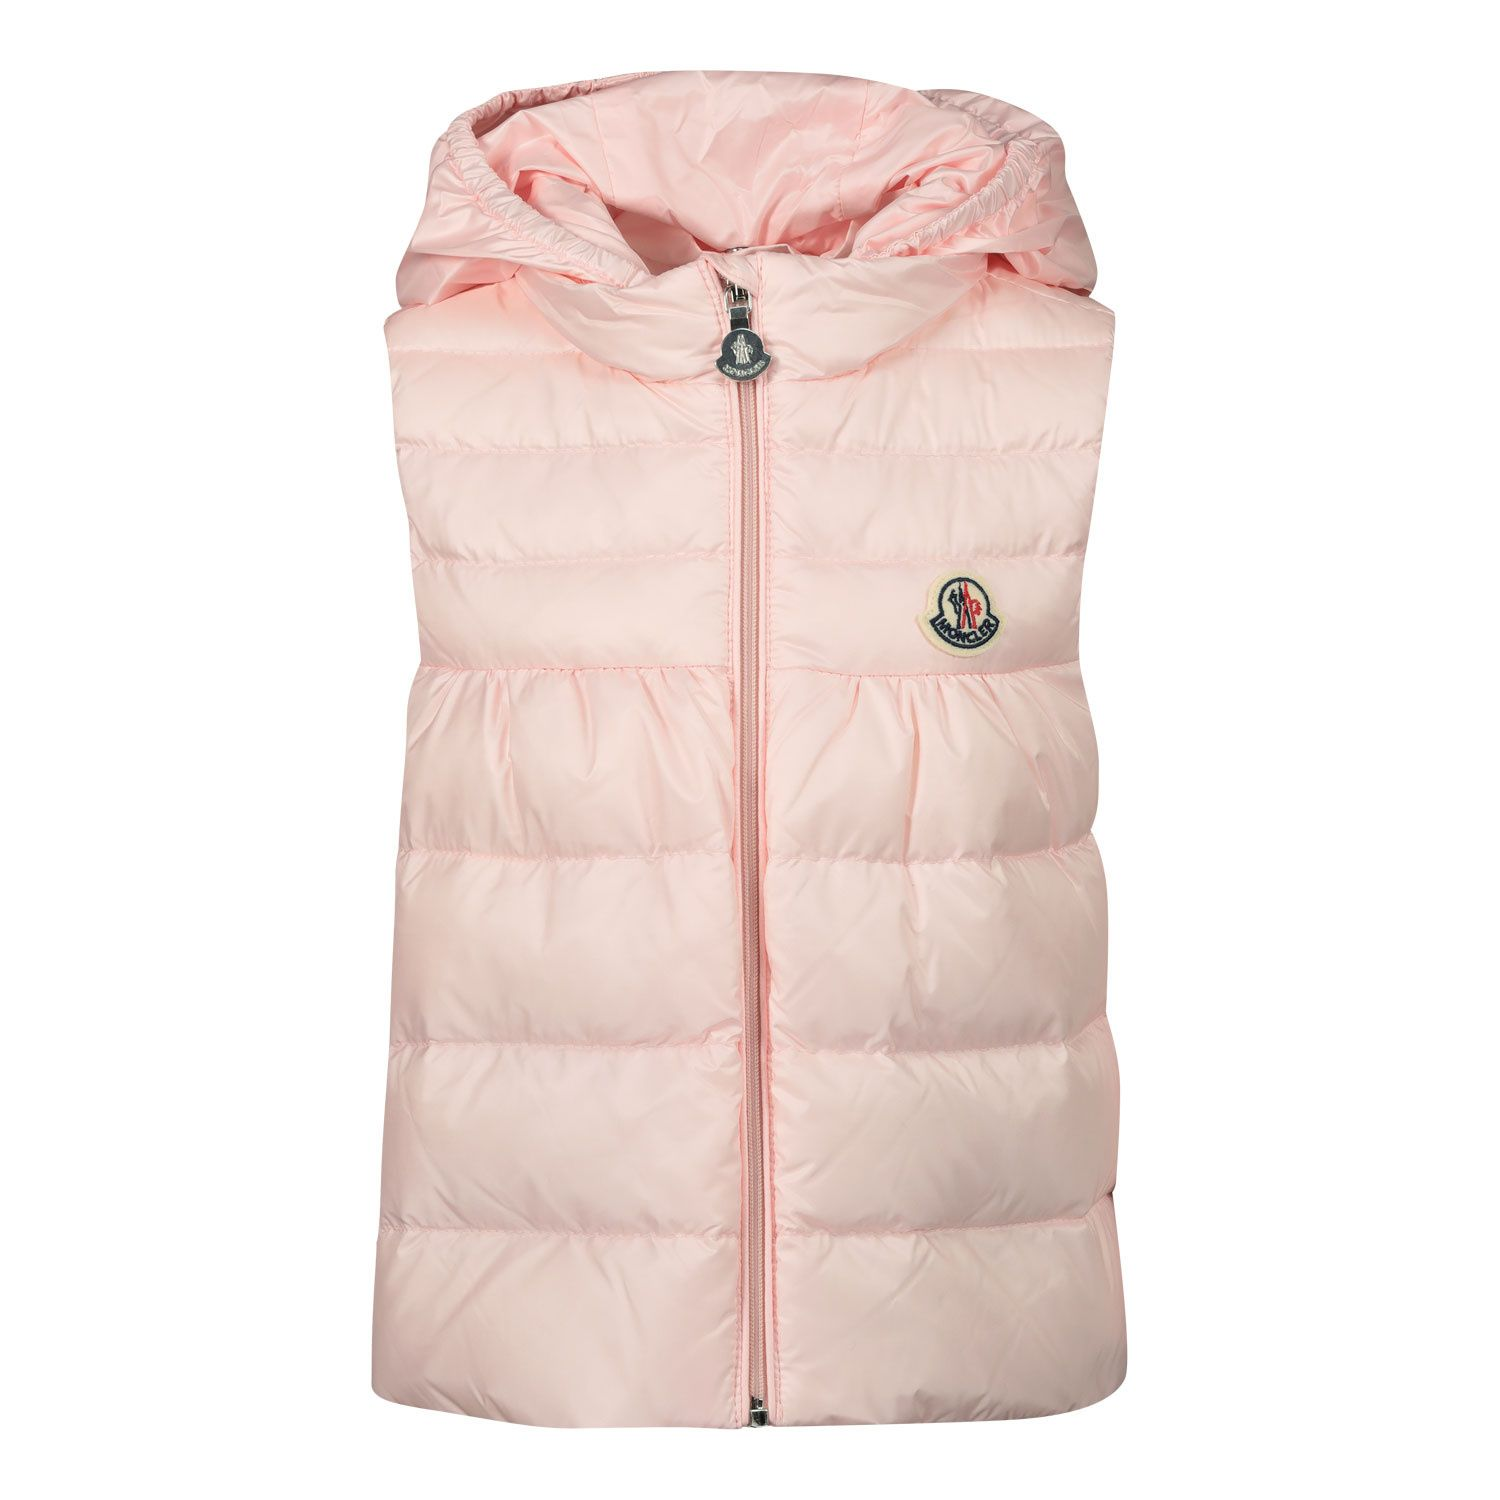 Picture of Moncler 1A10610 baby bodywarmer light pink